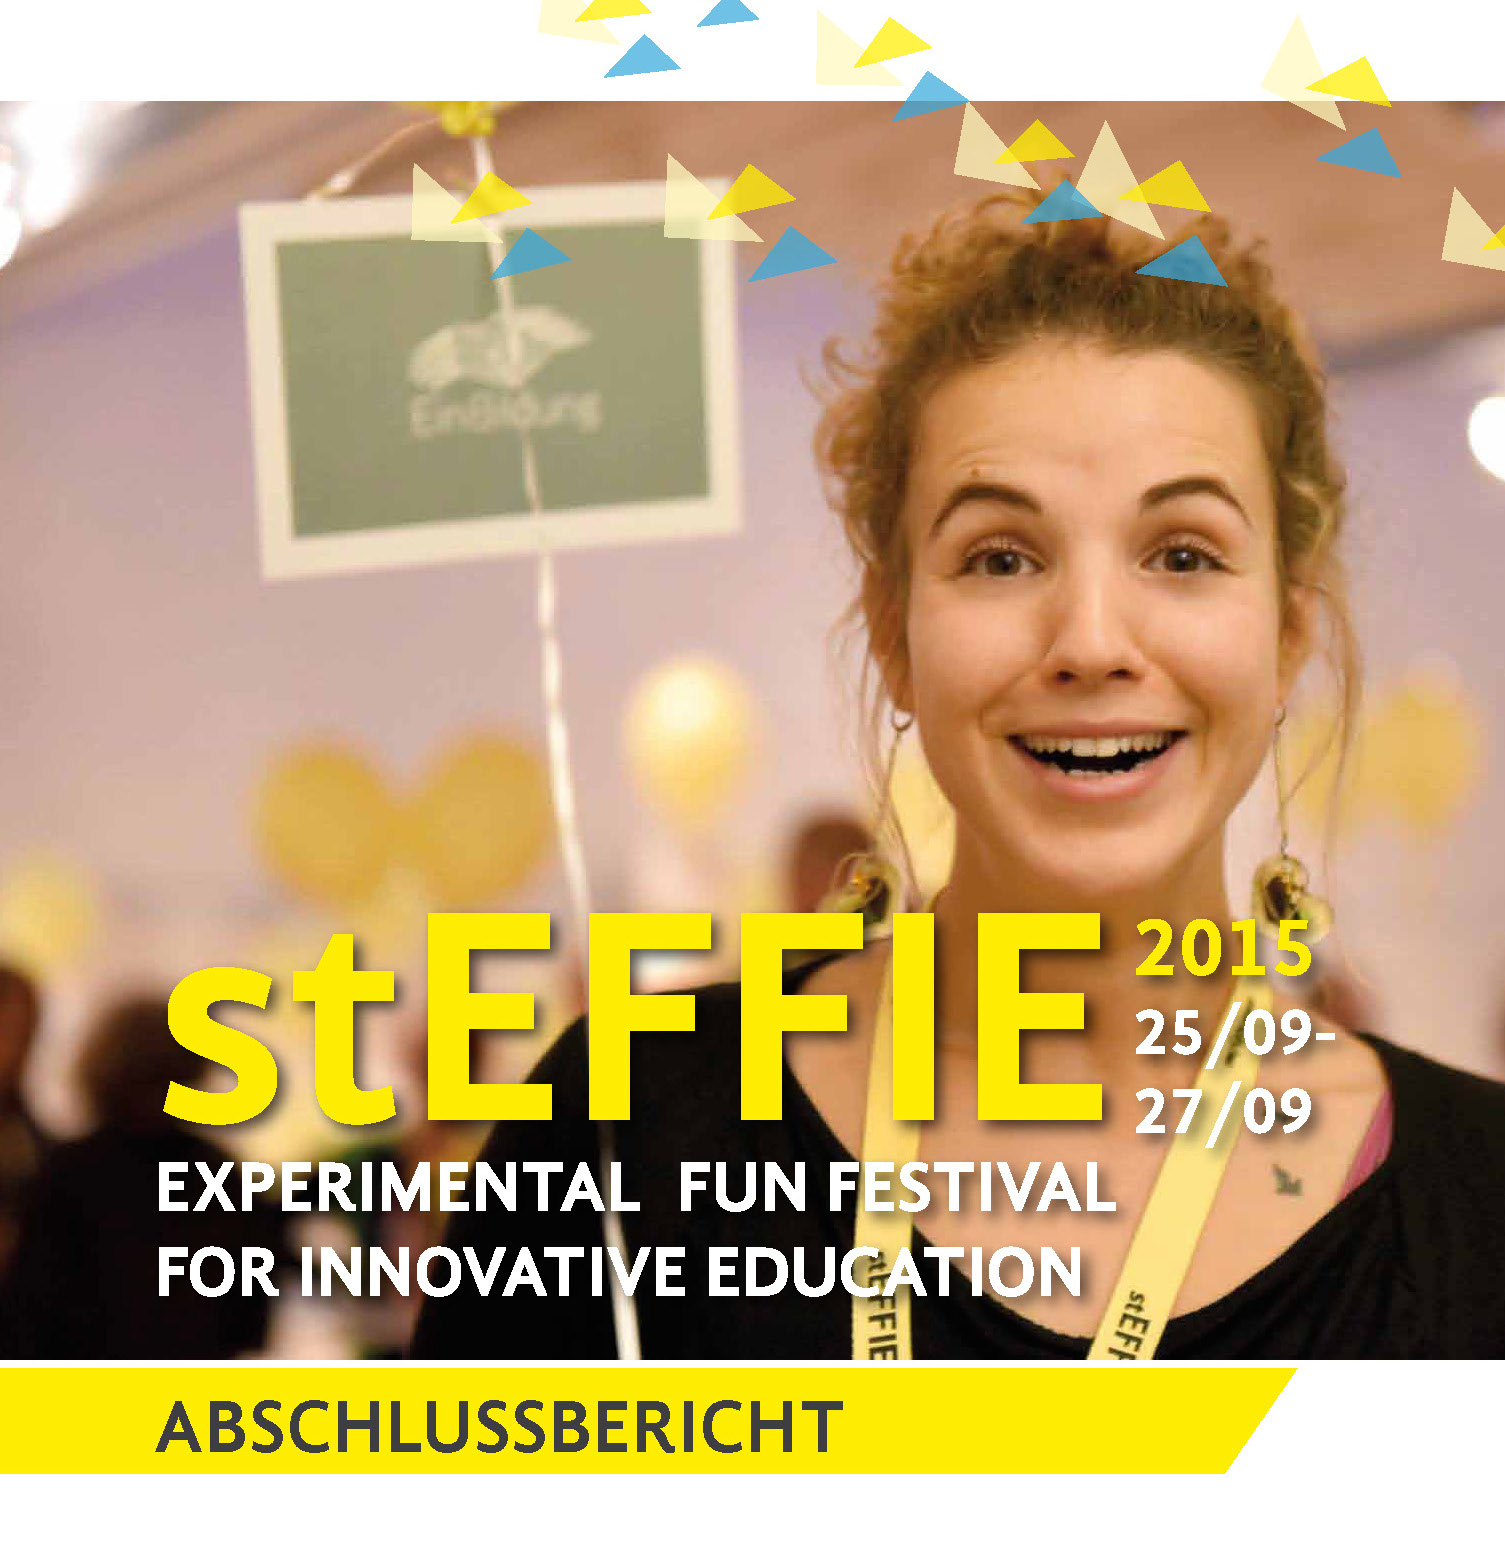 StEFFIE 15 REPORT – CLICK TO DOWNLOAD